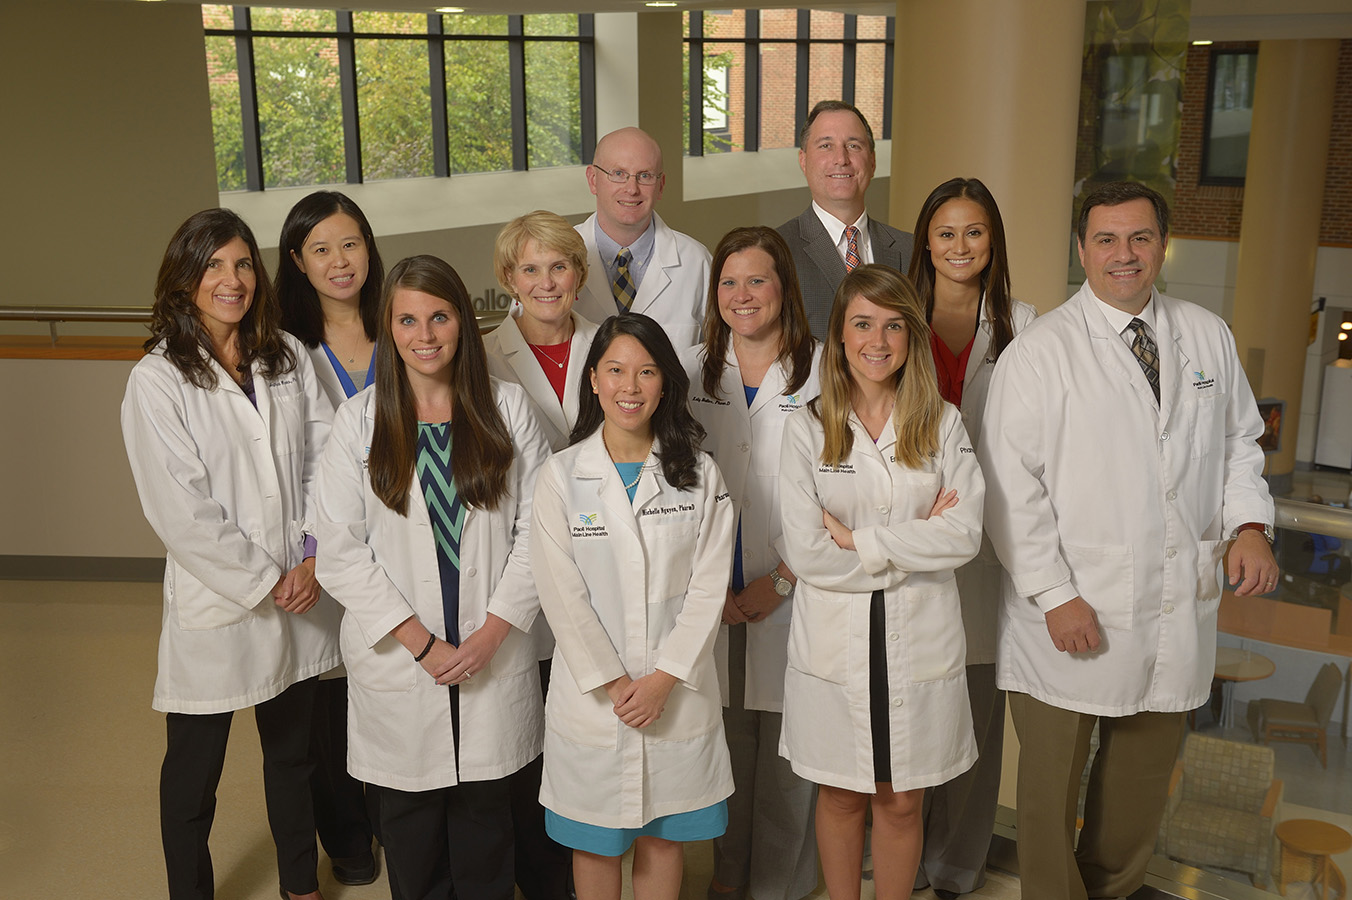 Paoli Hospital Pharmacy Residency group photo